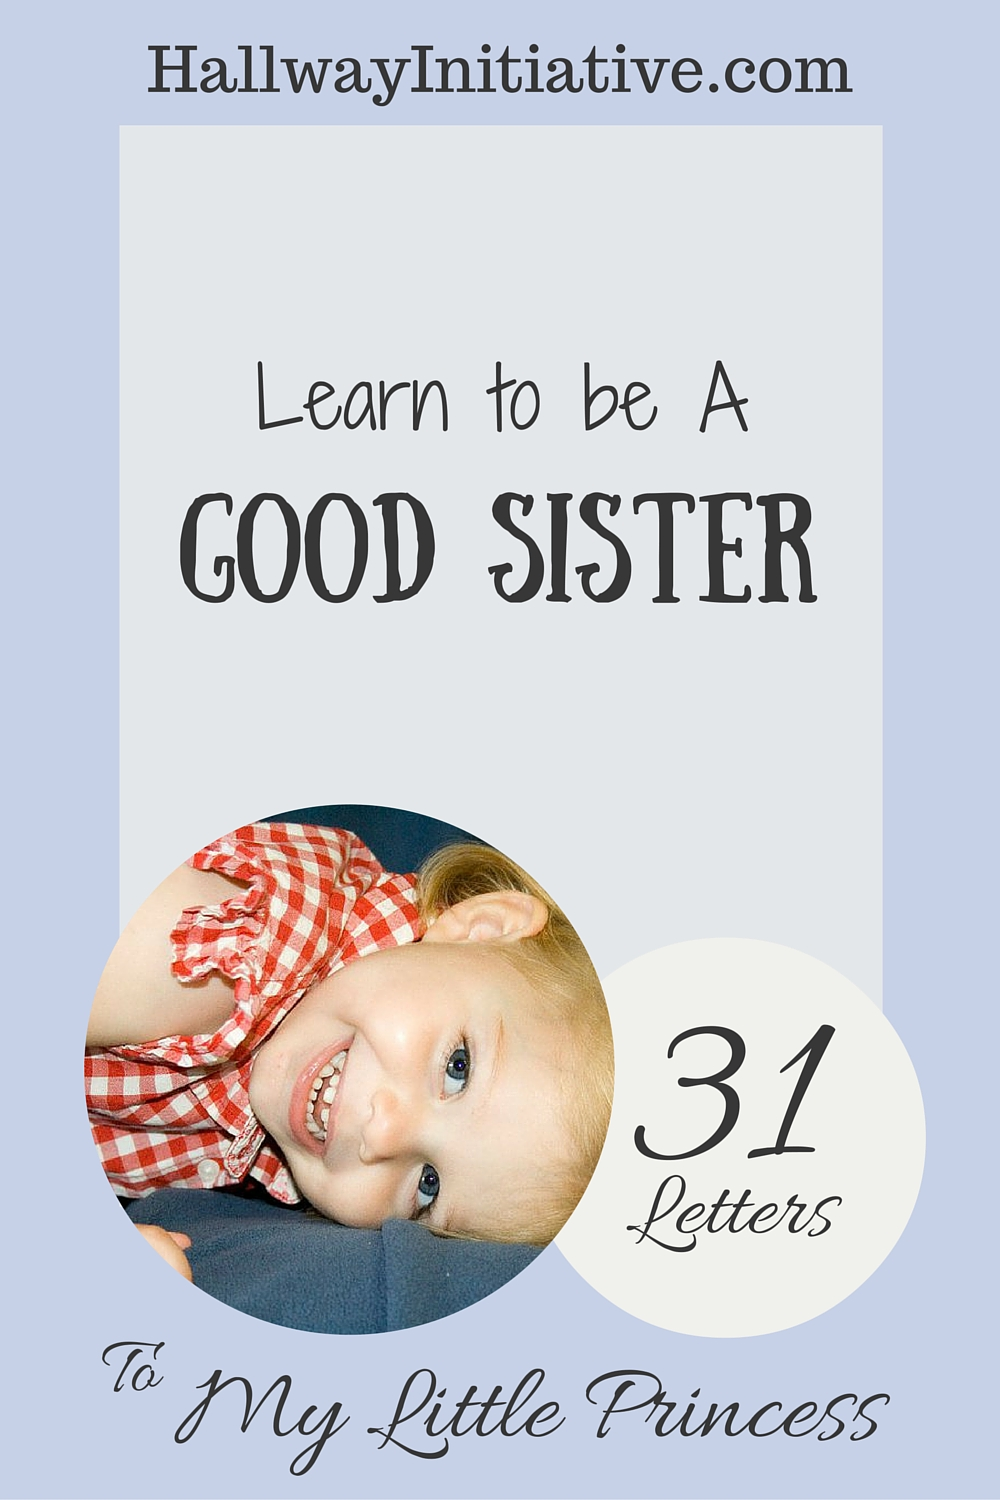 Learn to be a good sister